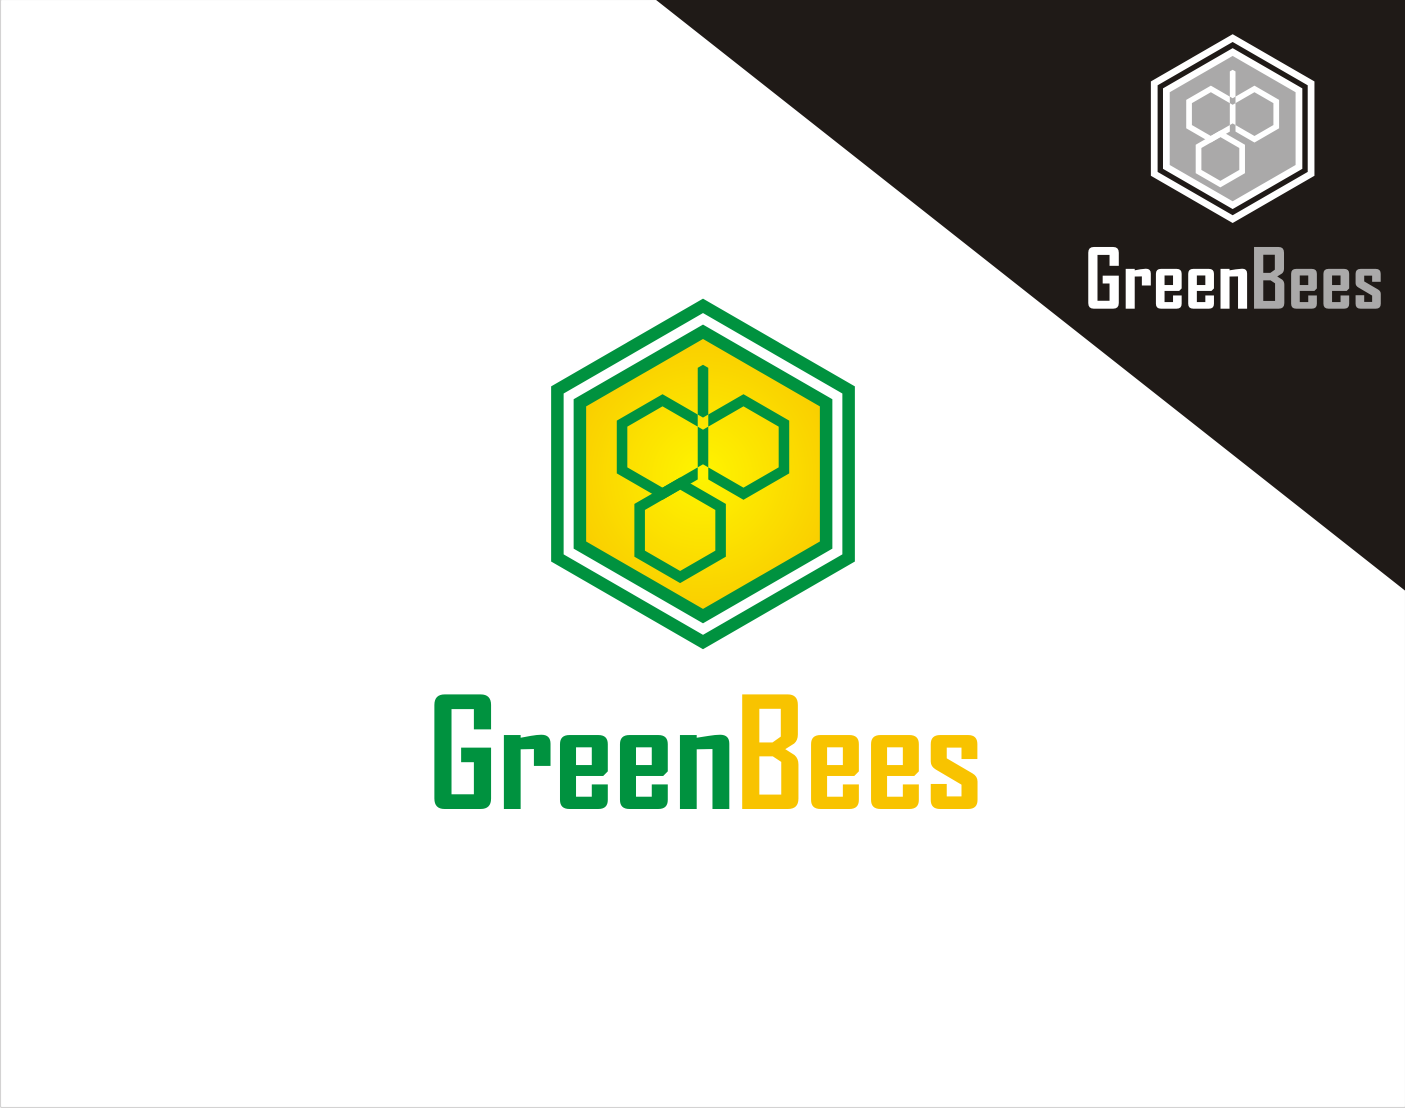 Logo Design by Armada Jamaluddin - Entry No. 327 in the Logo Design Contest Greenbees Logo Design.